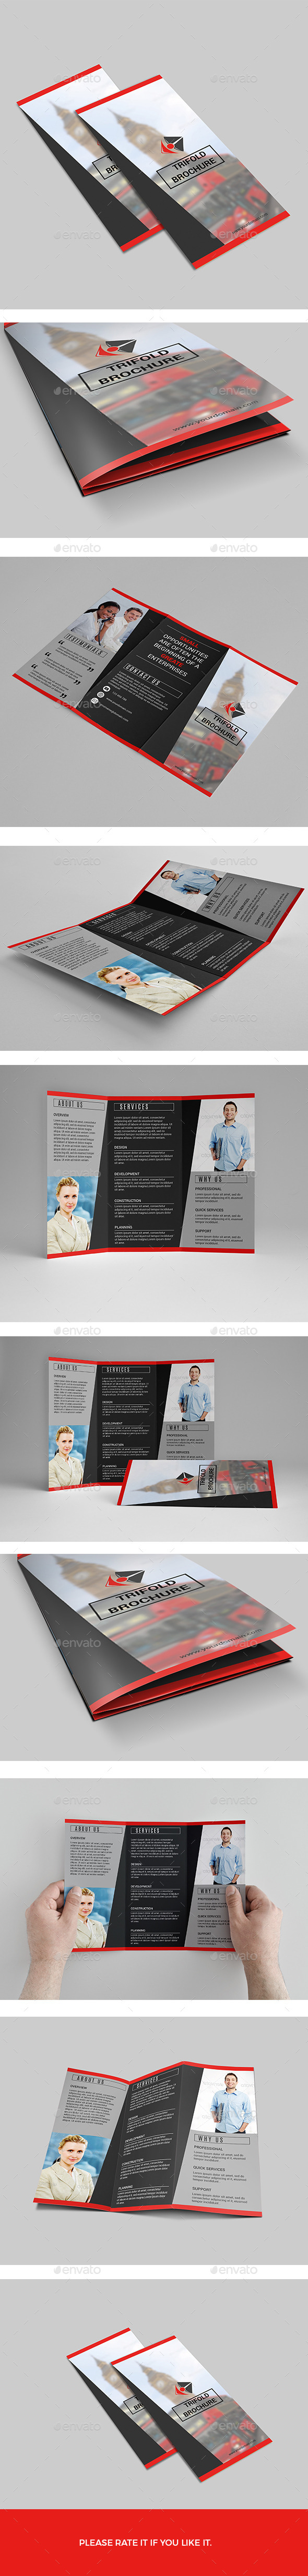 GraphicRiver Brochure-Trifold 11314648